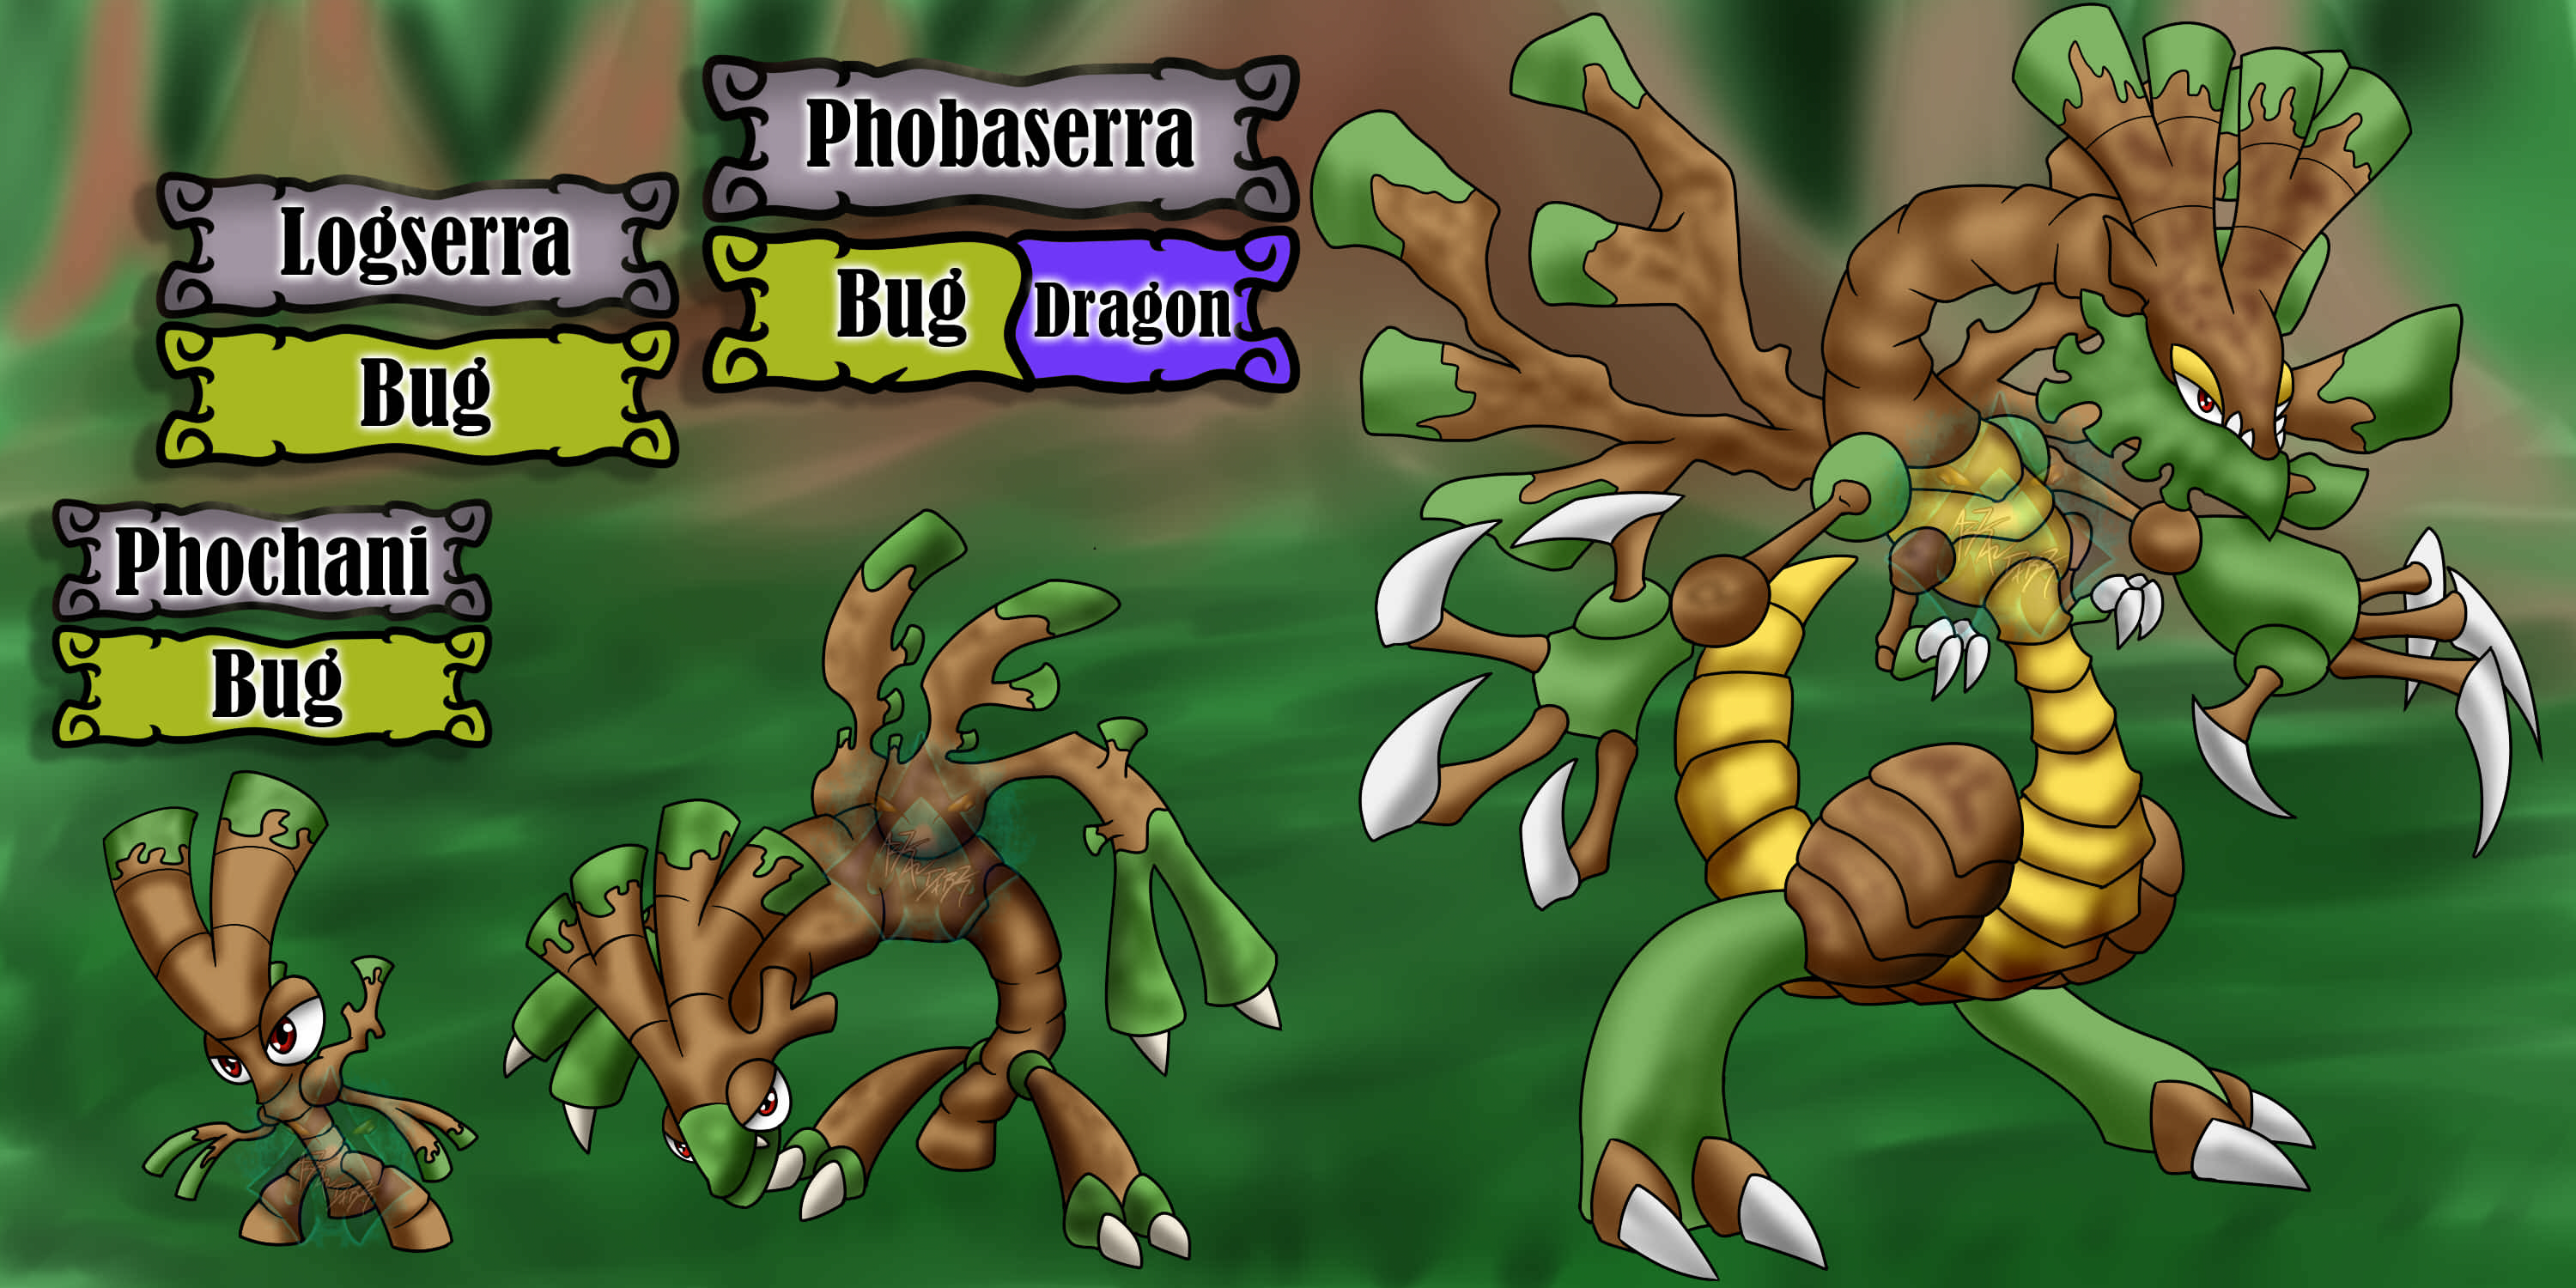 Nijitaki Fakemon 12 14 Bug Dragon Video By Arkadark On Deviantart